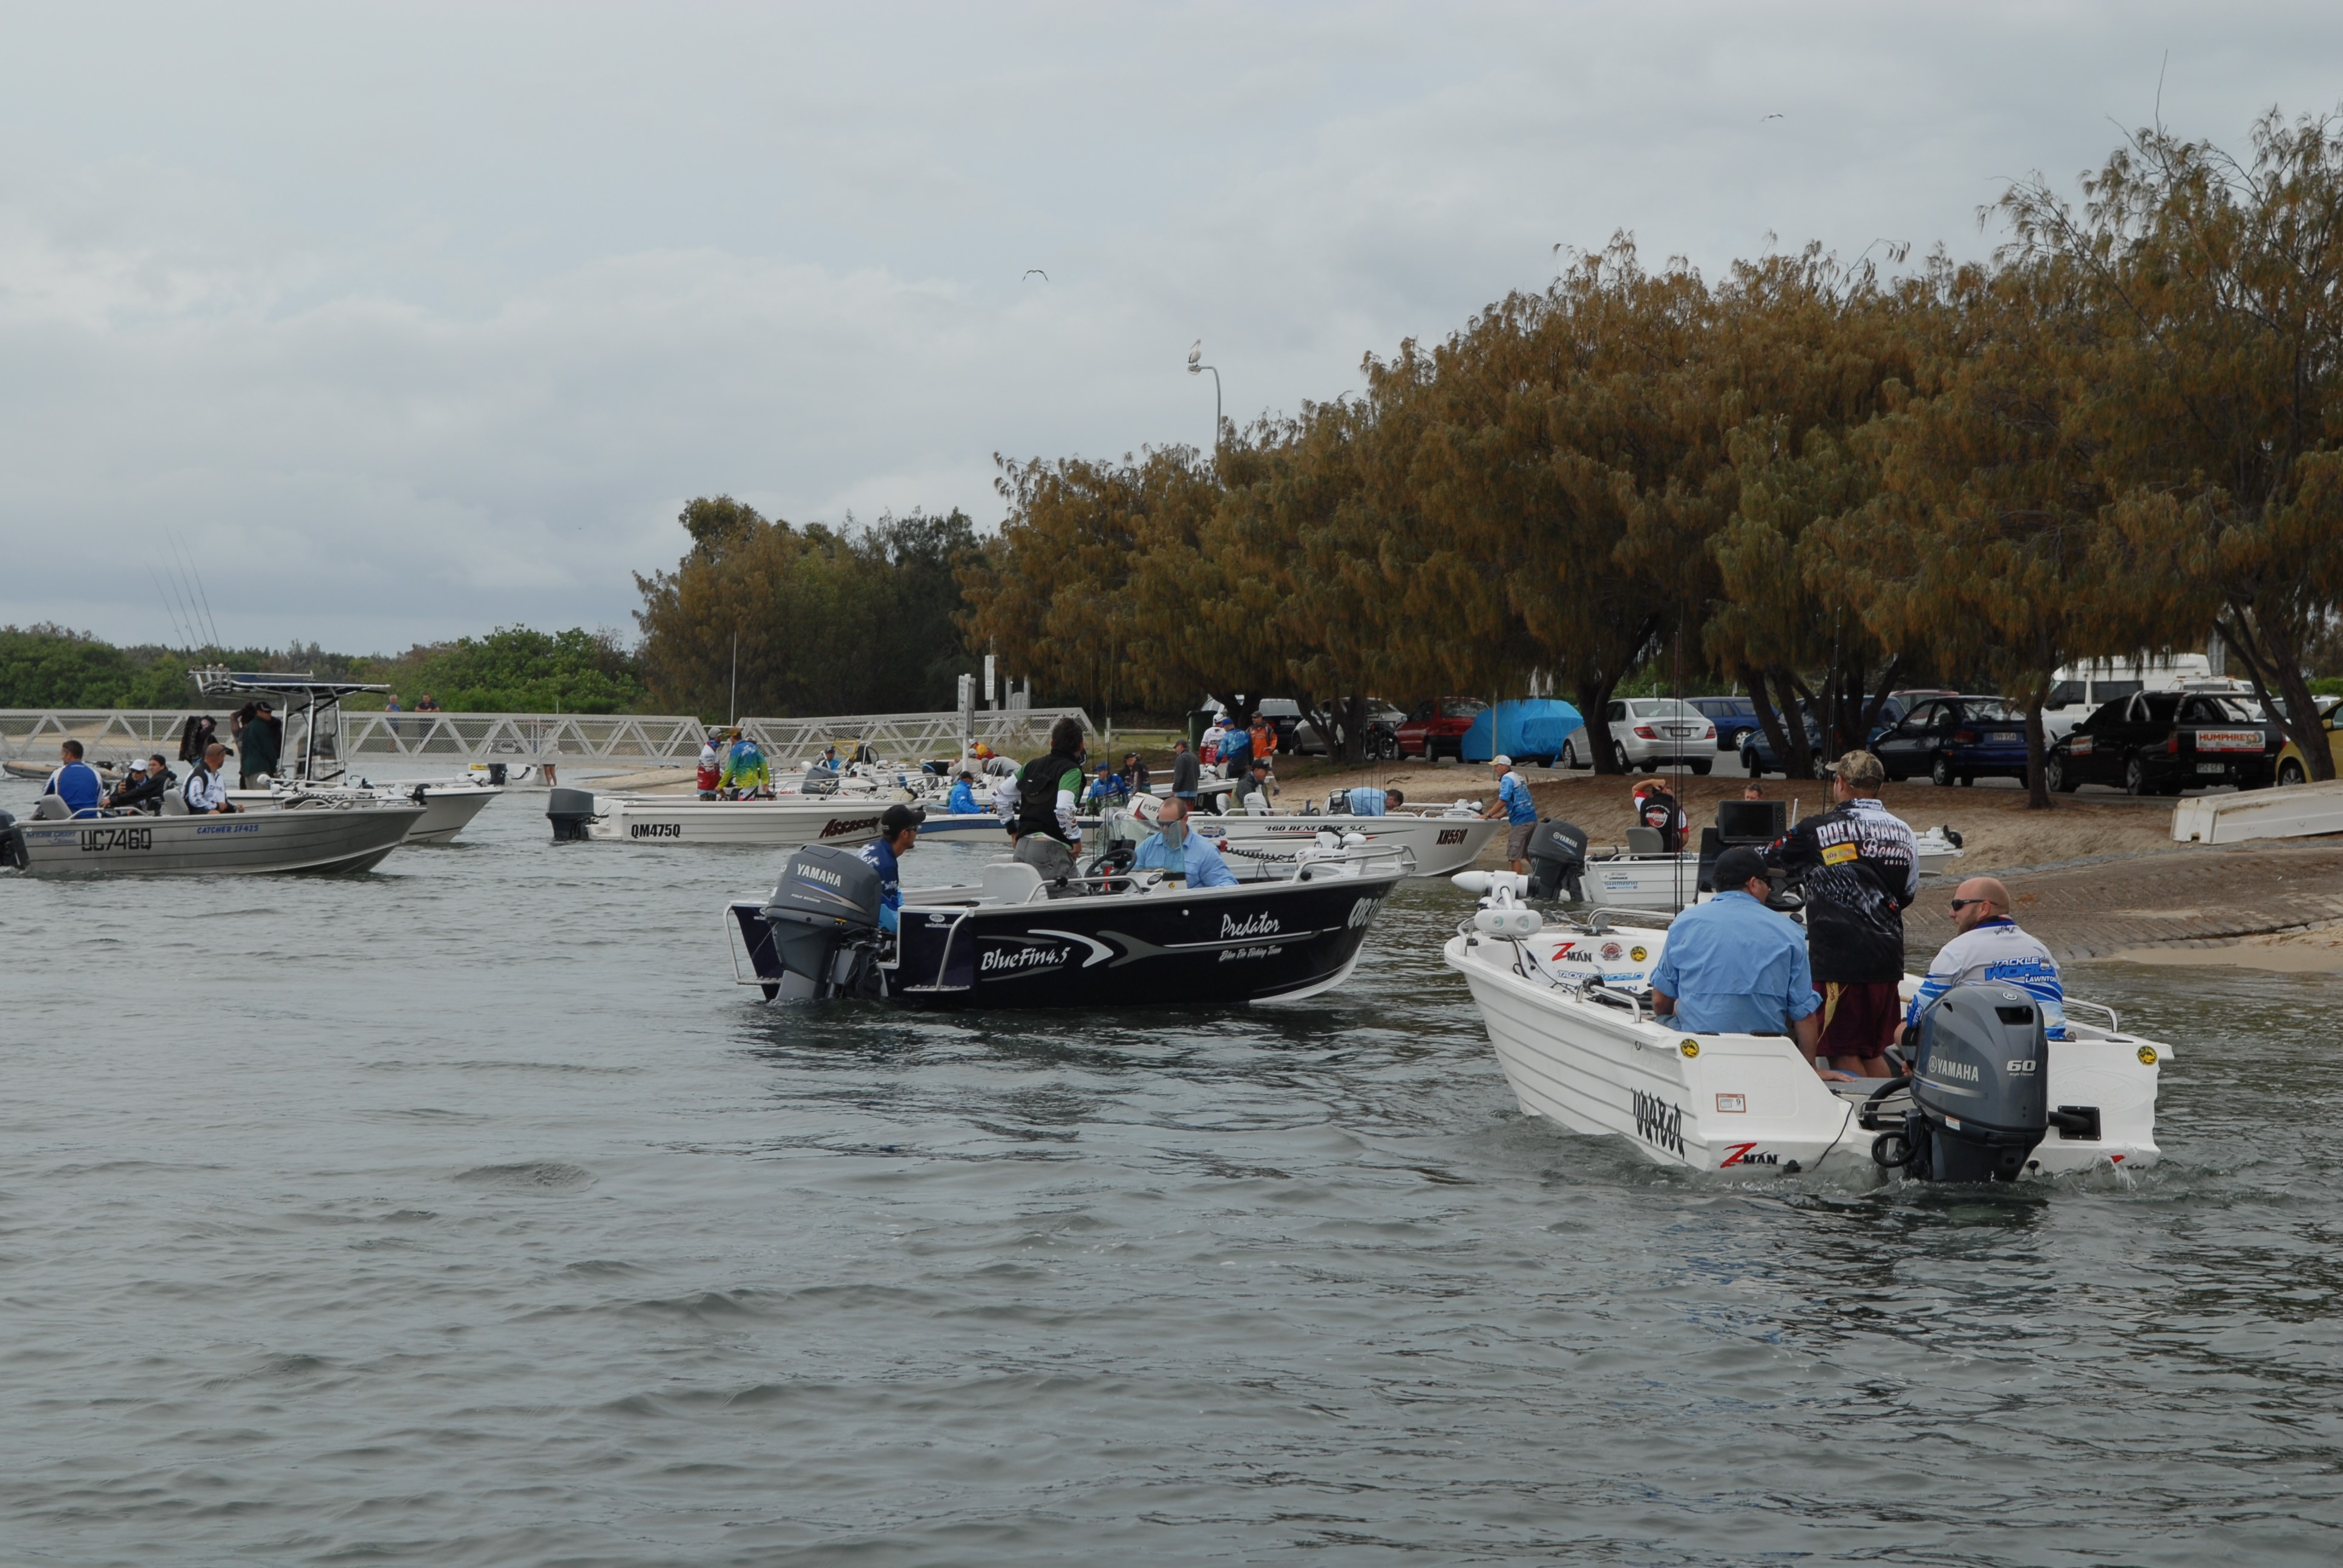 Some of the starters at the recent Gold Coast Sportfishing Club Dash for Cash event.